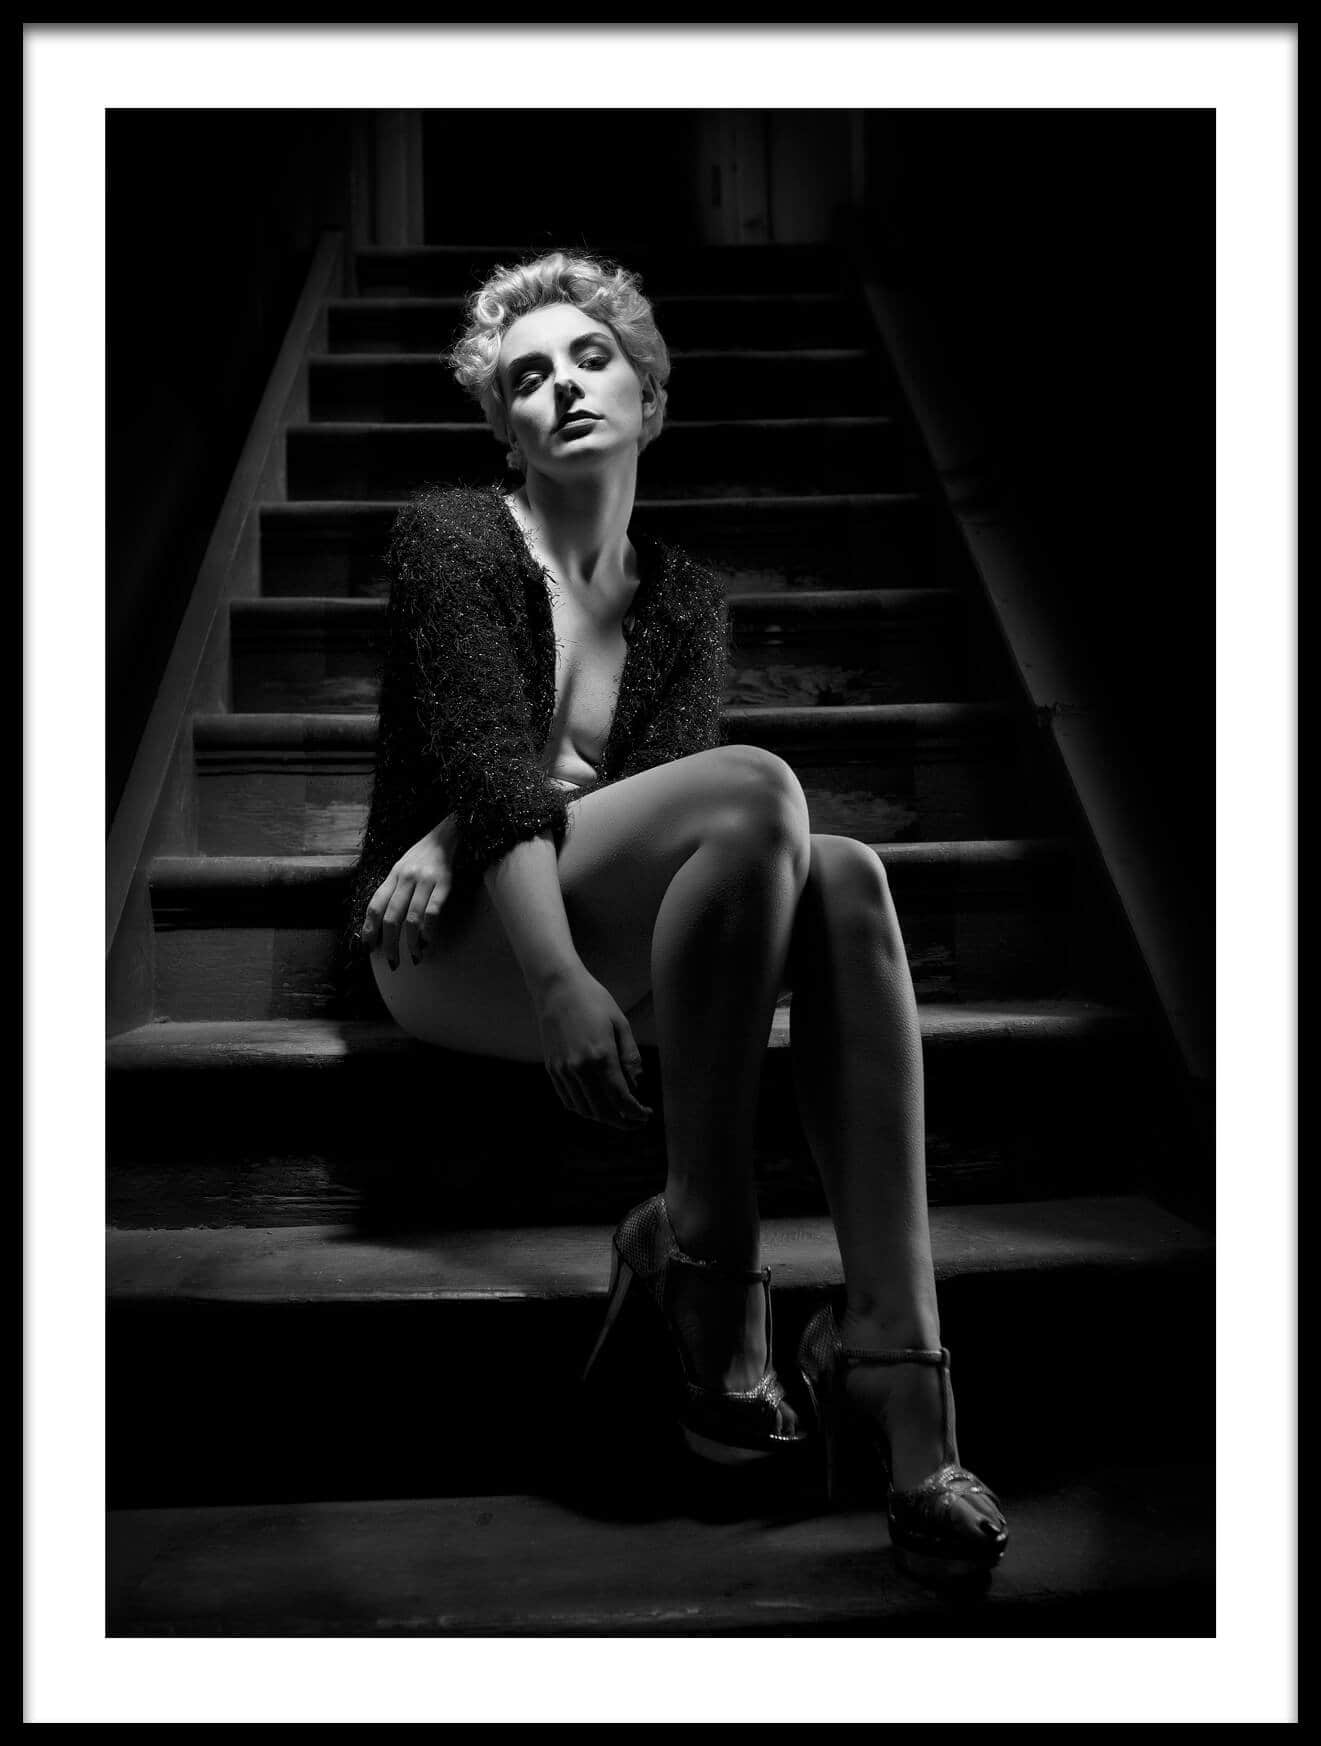 wall-art-poster-waiting-in-the-noir-21015-1700